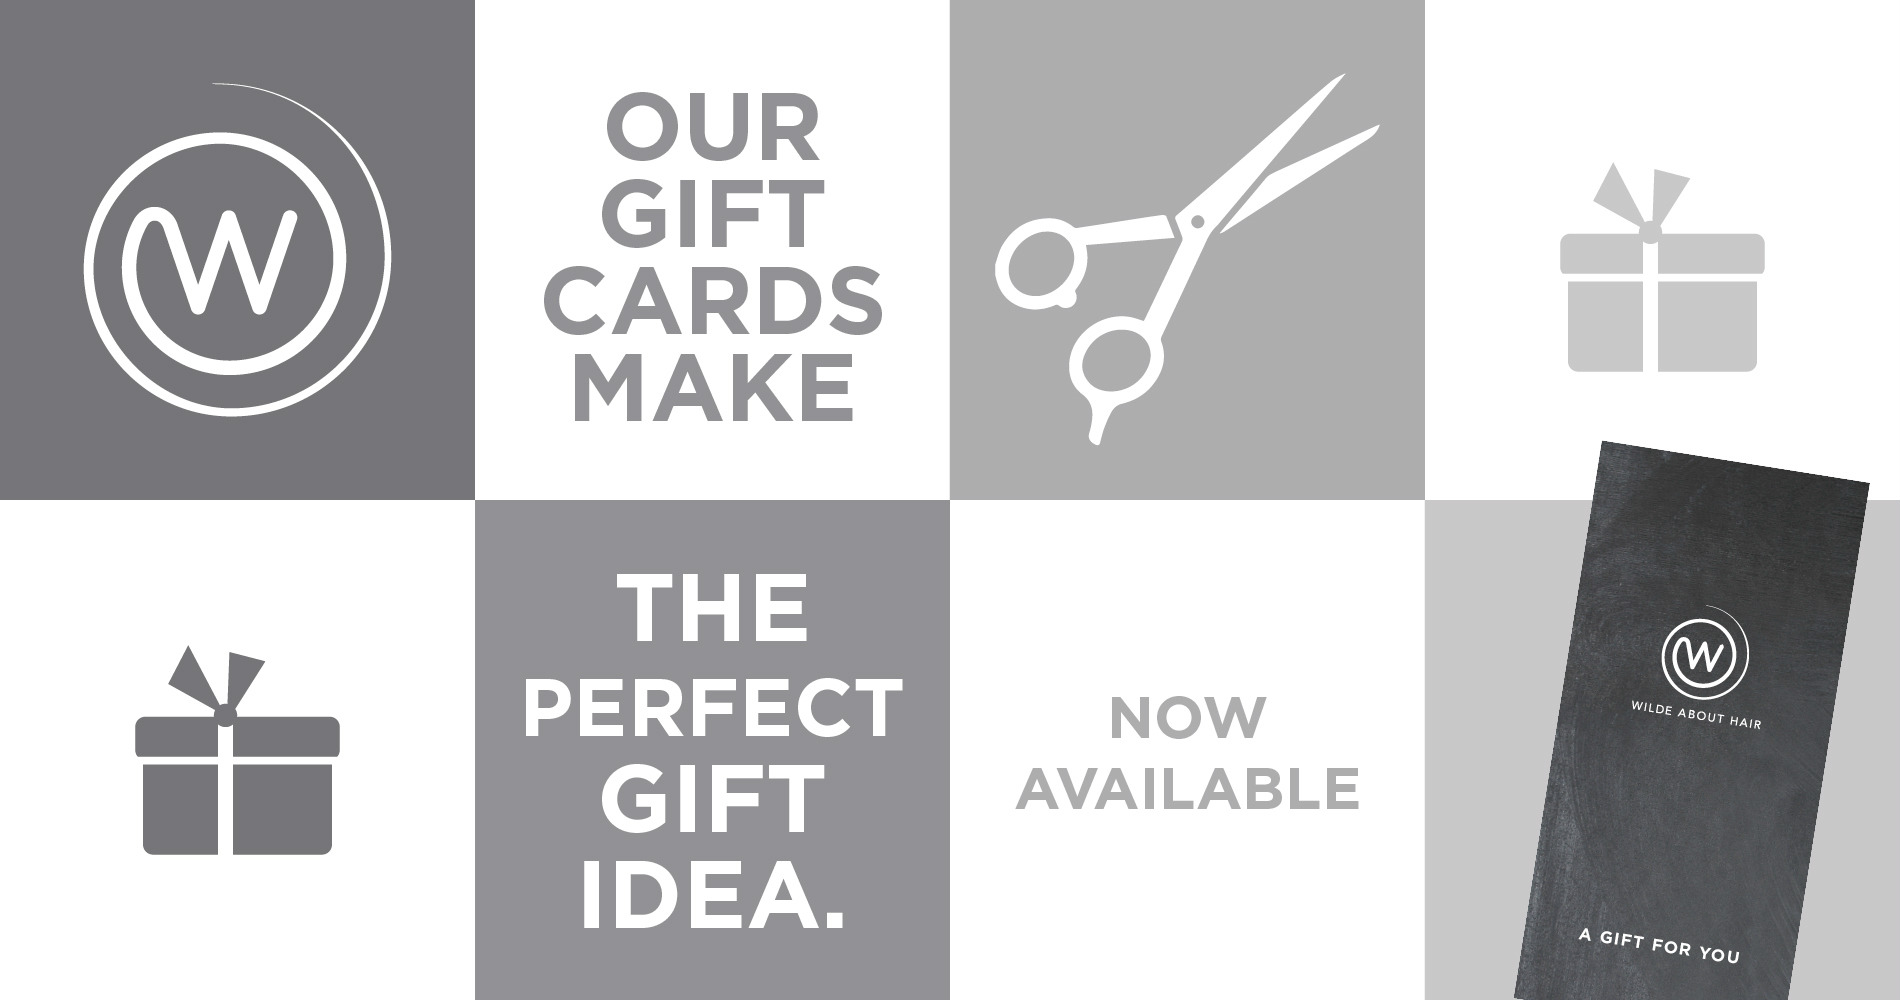 Our gift cards make the perfect gift idea